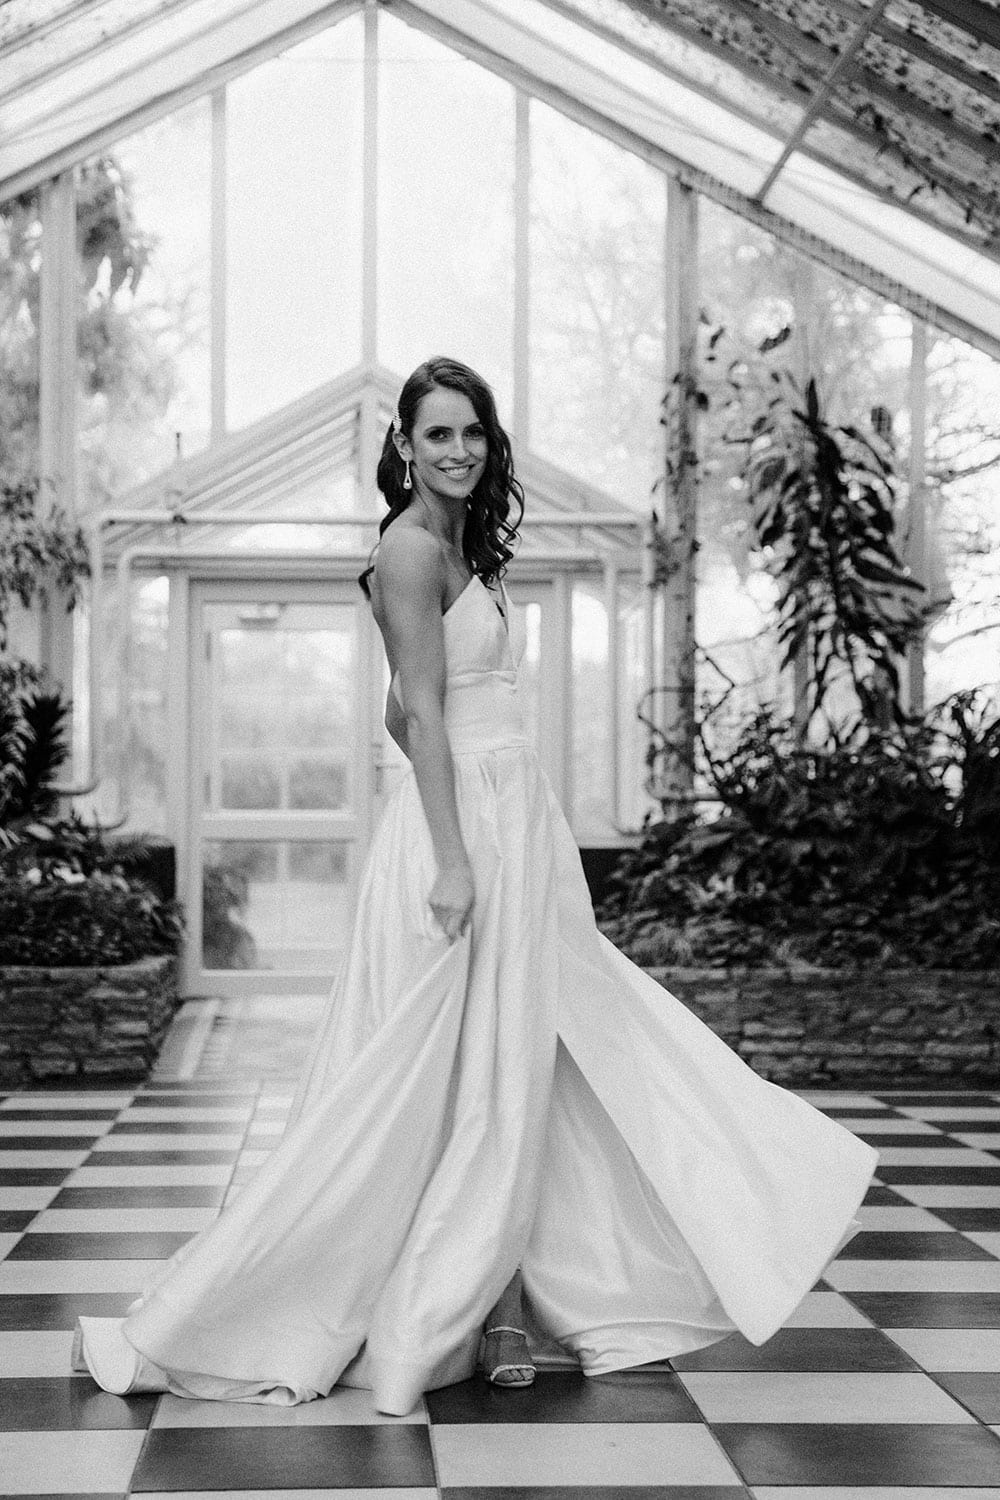 Model wearing Vinka Design Germaine Wedding Dress, a strapless dramatic wedding dress with split in a botanical garden greenhouse black and white